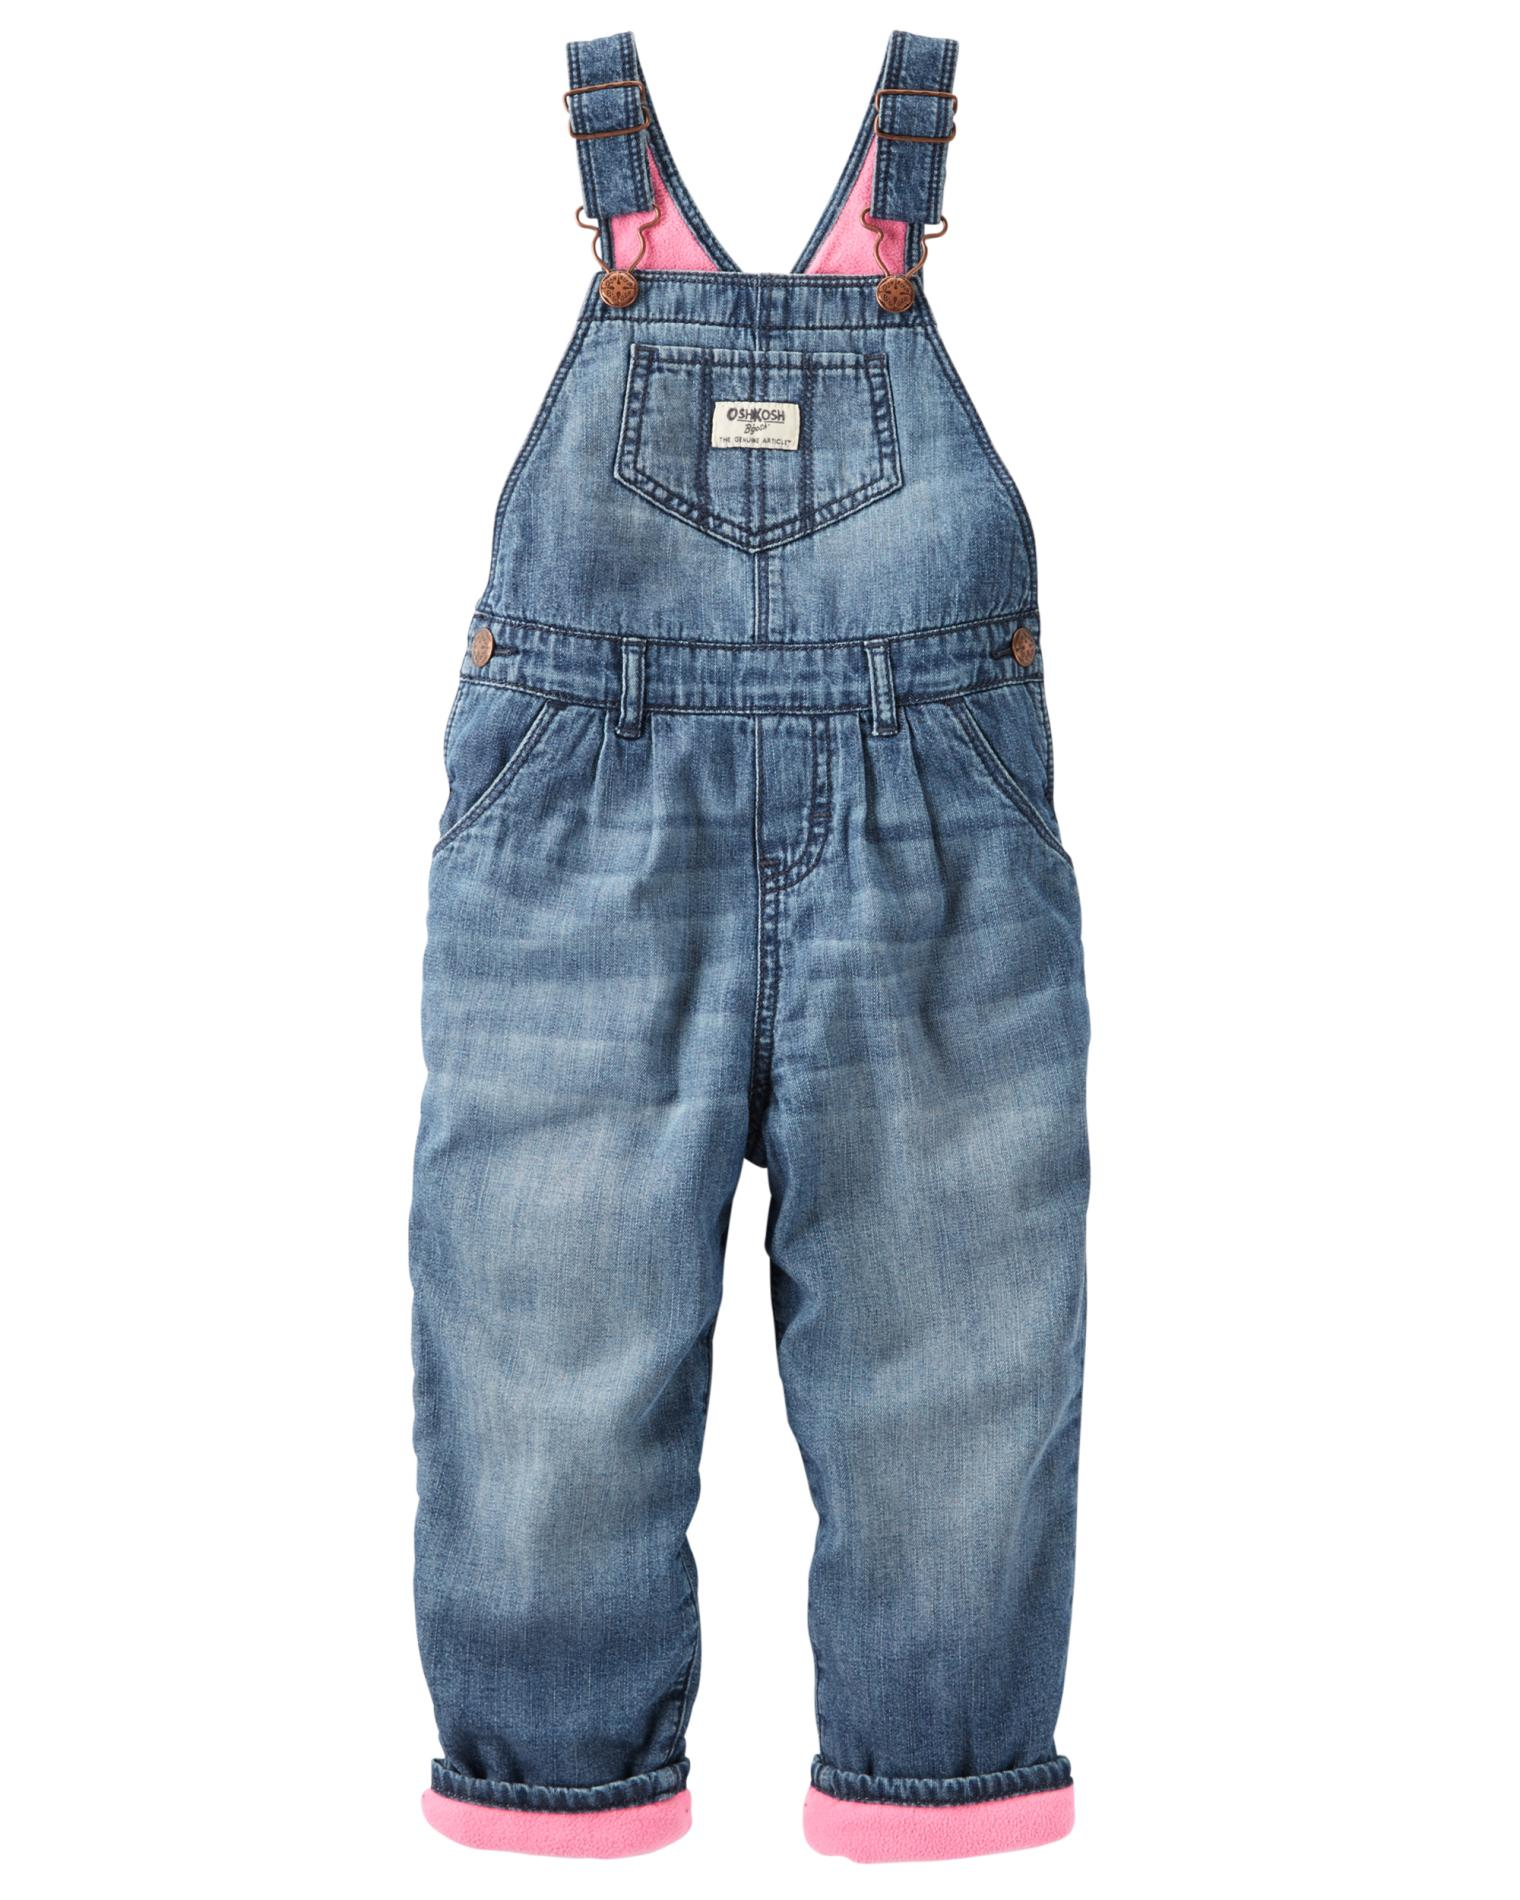 Osh Kosh Baby Girls' World's Best Overalls